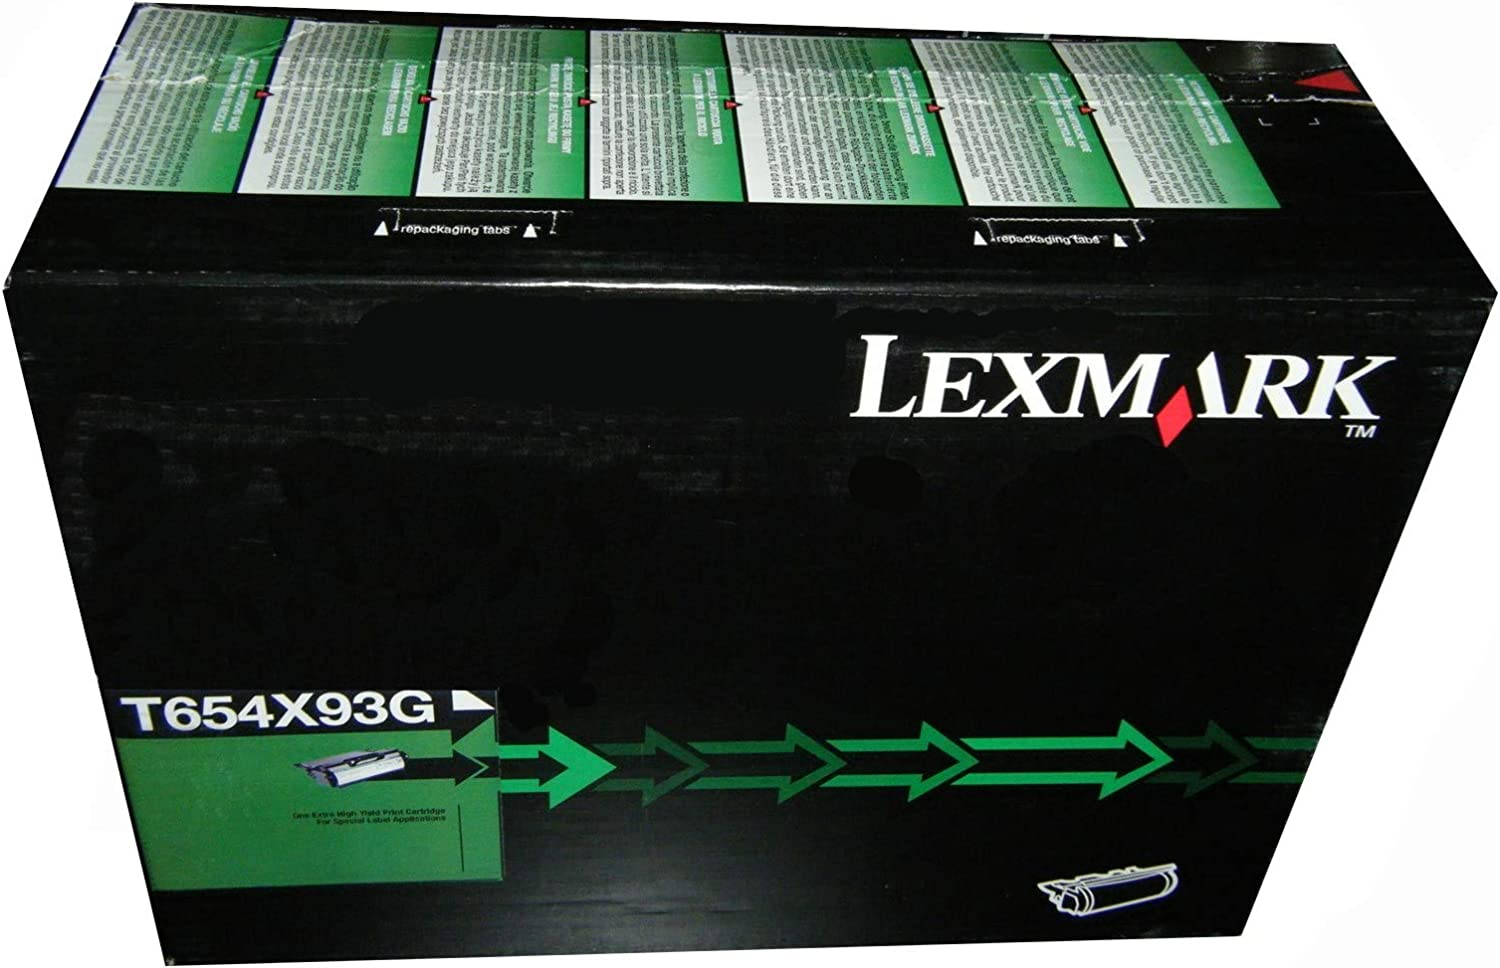 Brand New Lexmark T654X93G for T654 PRINTERS Extra High Yield Black Toner Cartridge MSRP $425 0FFICEDEP0T